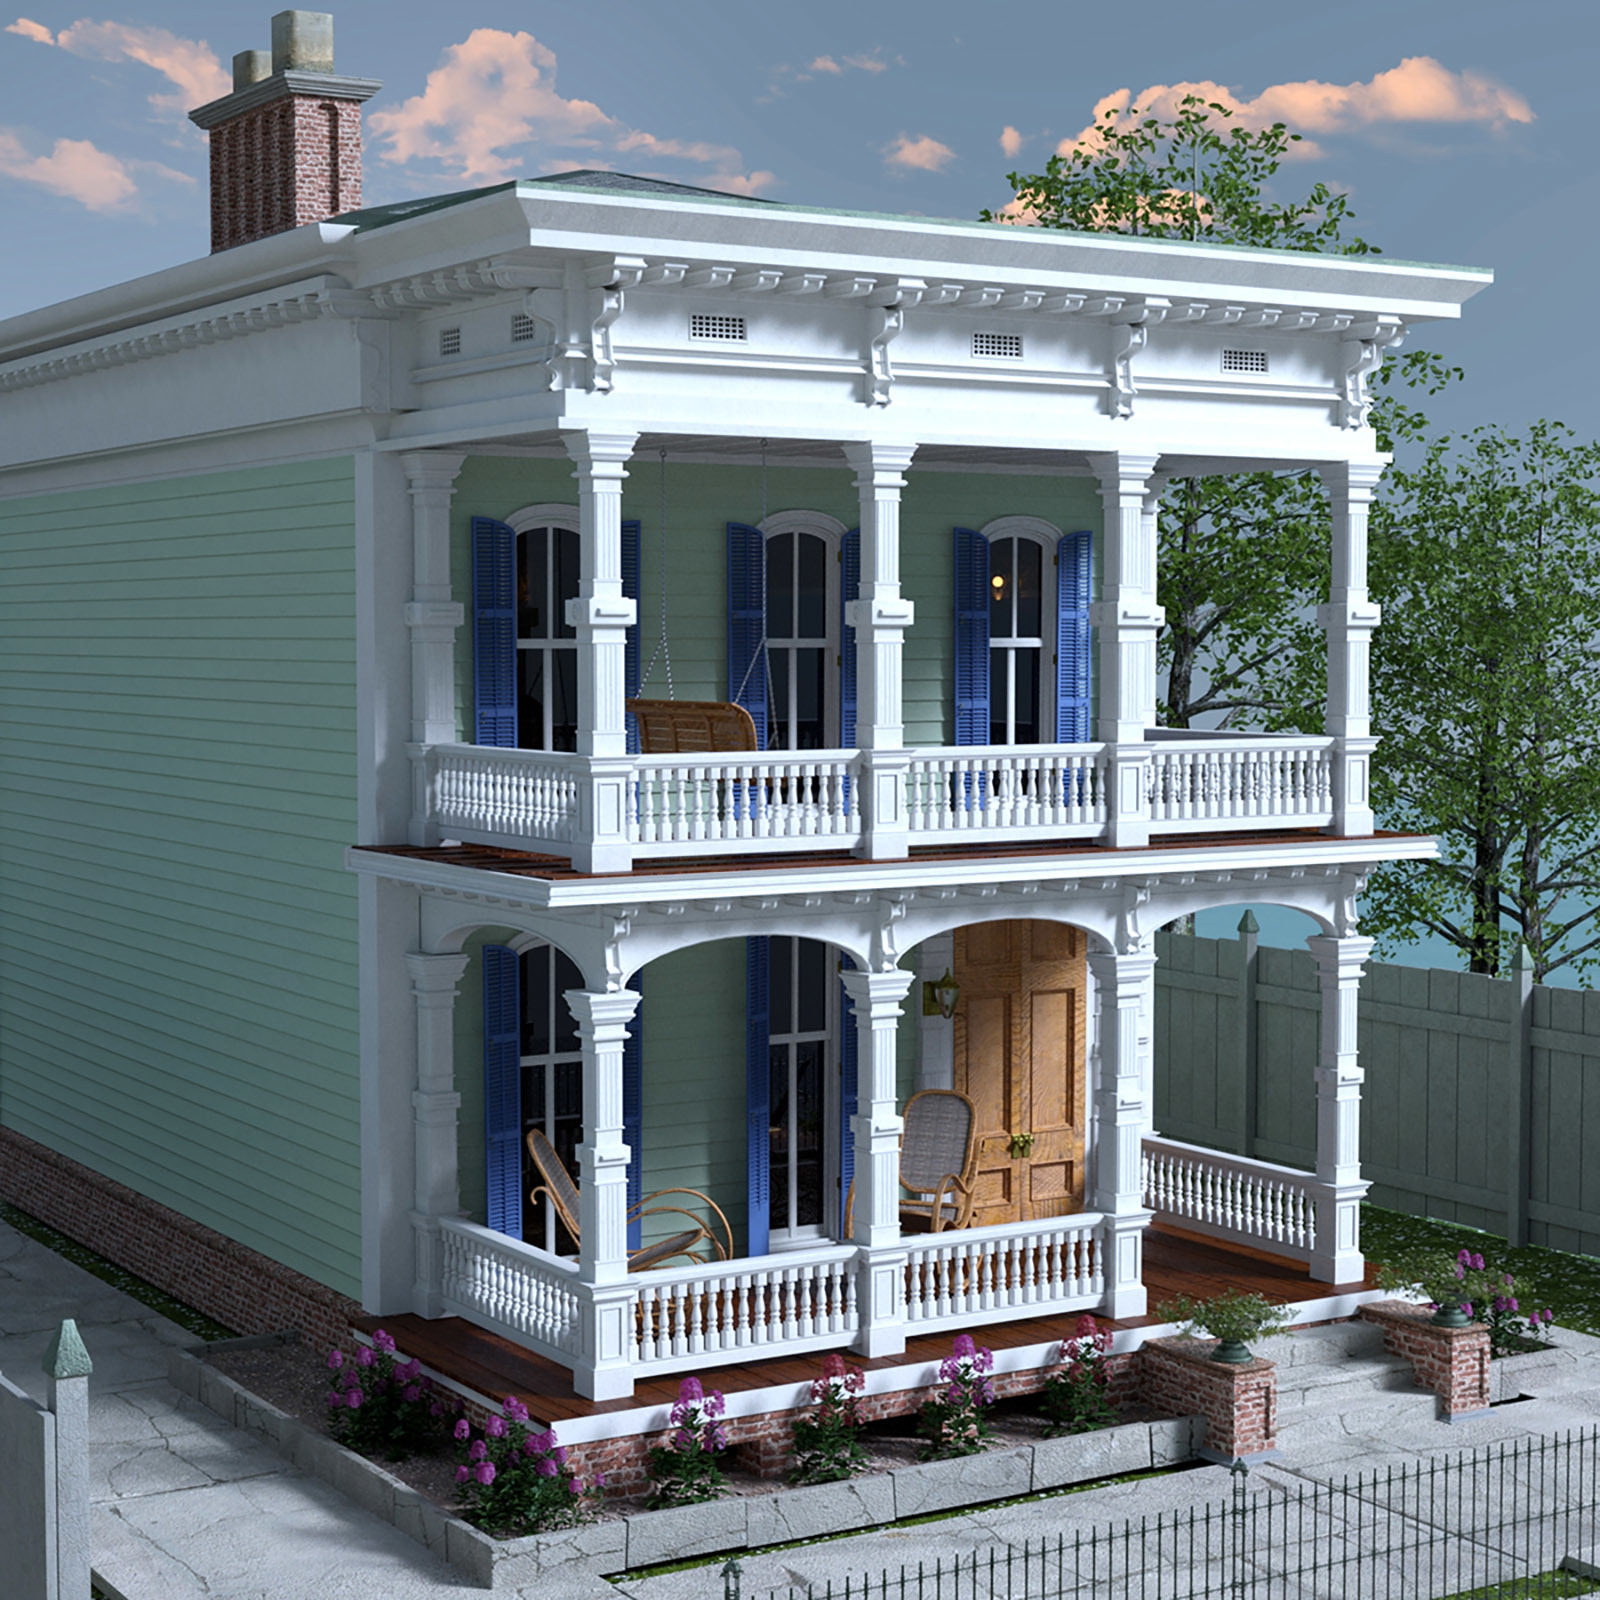 MS20 New Orleans Garden District House for DAZ Studio 4.9 Iray by London224